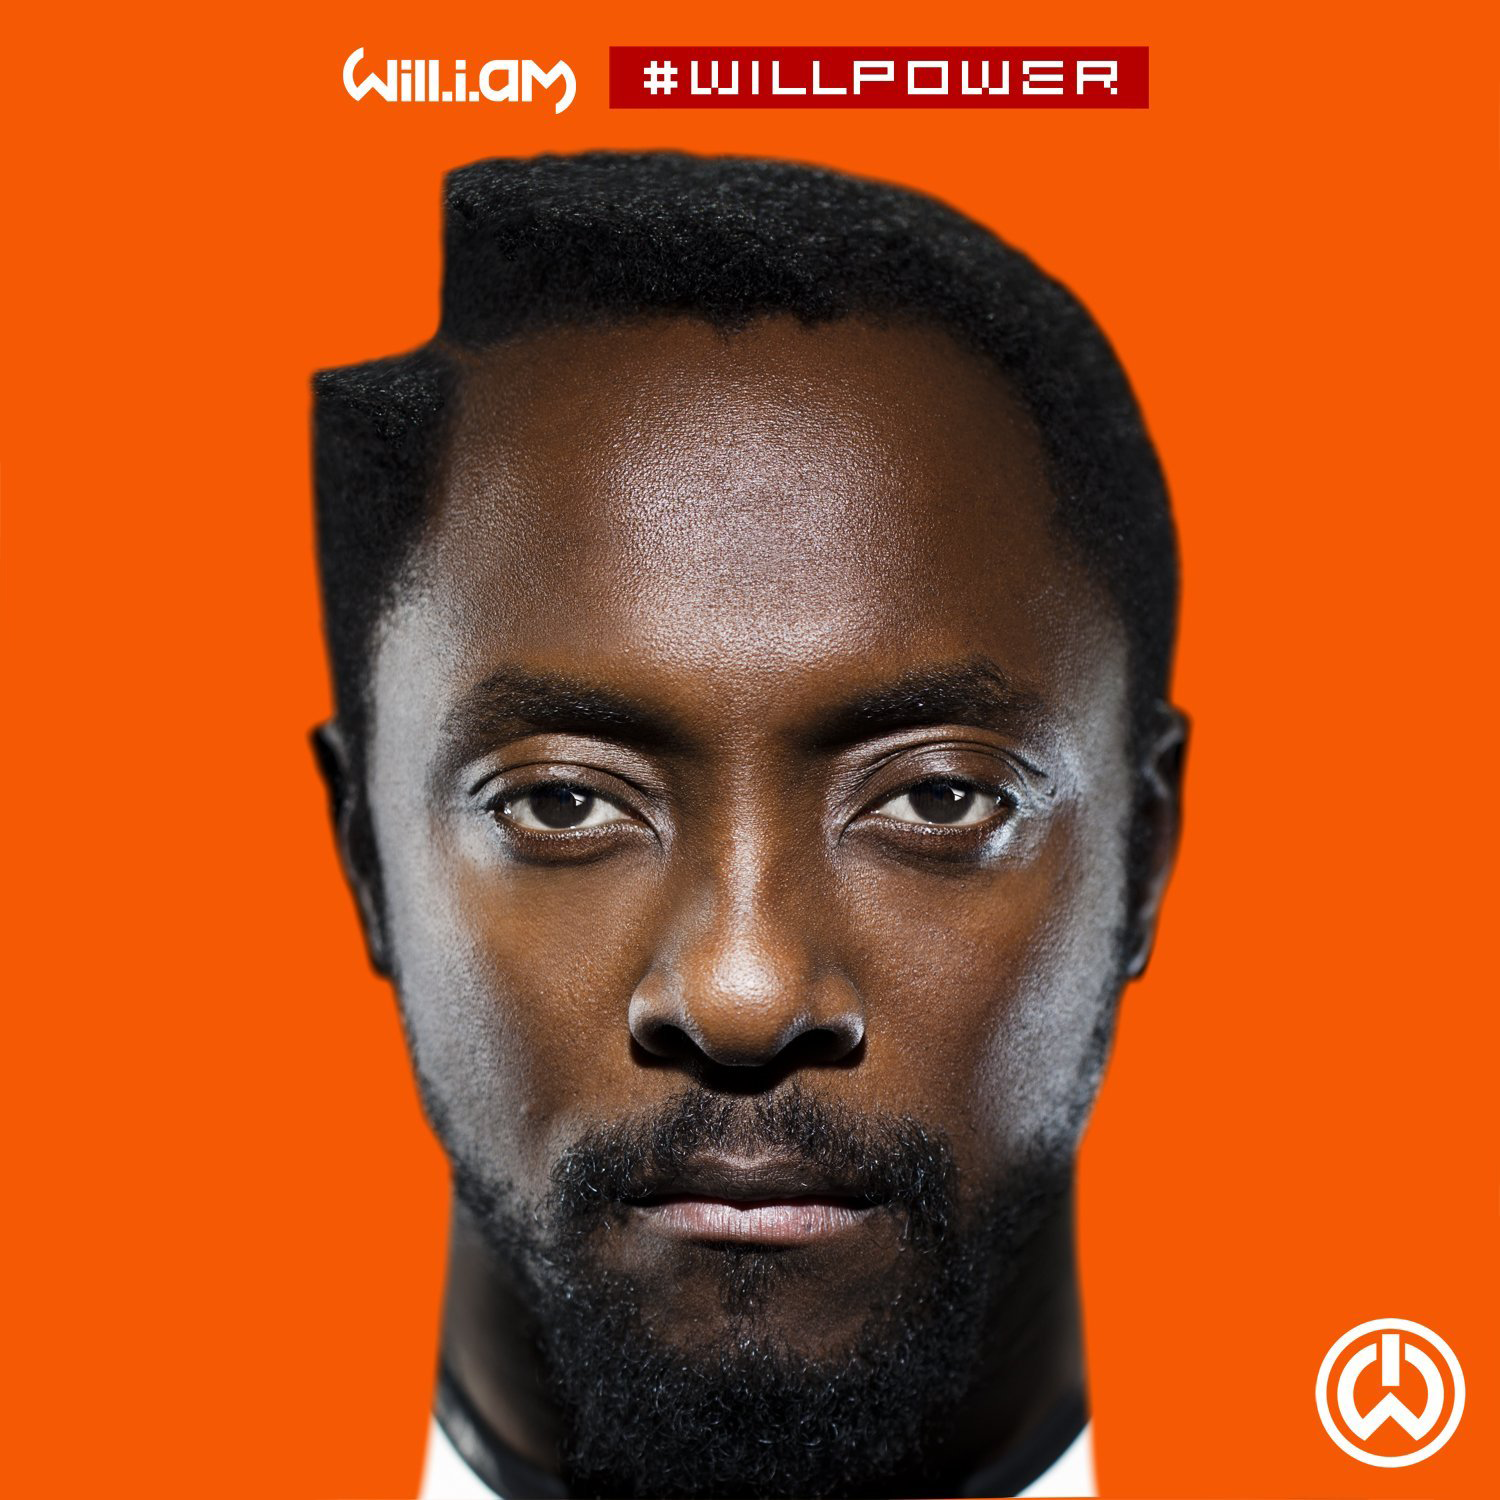 will.i.am - Feelin' Myself ft. Miley Cyrus, Wi..